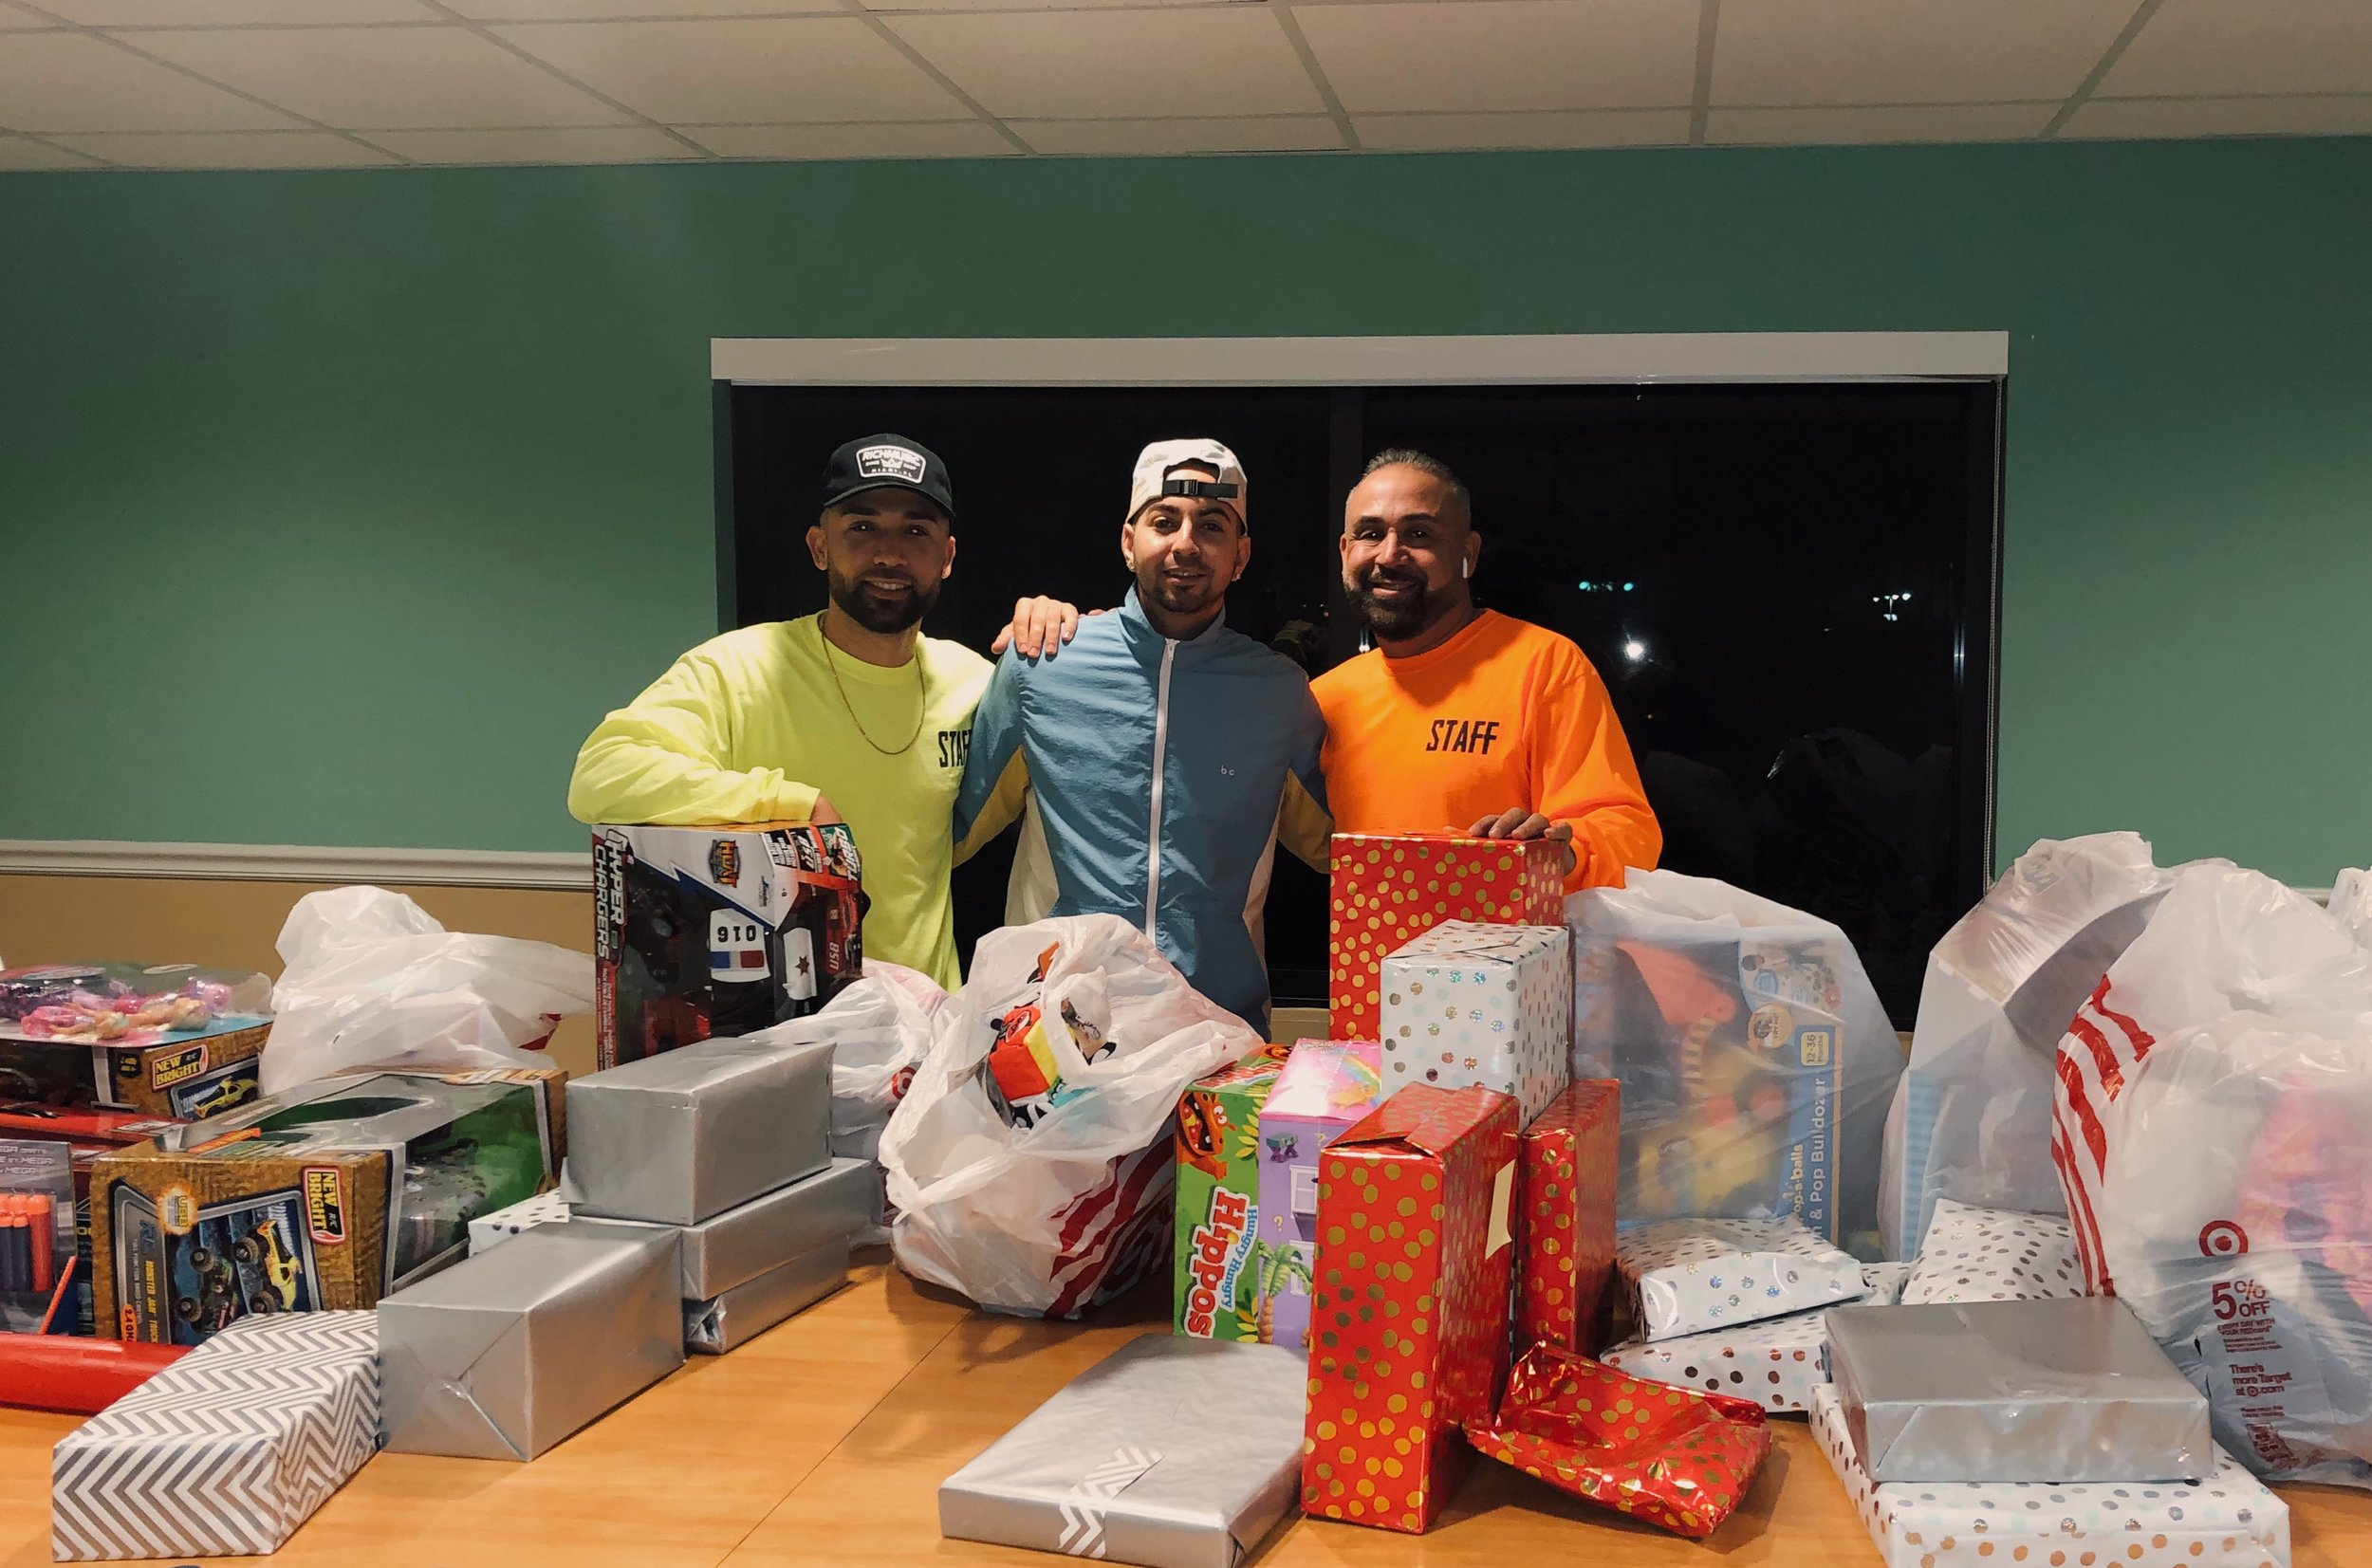 JQuiles and his team personally wrap and drop off Christmas gifts for the kids at the shelter!